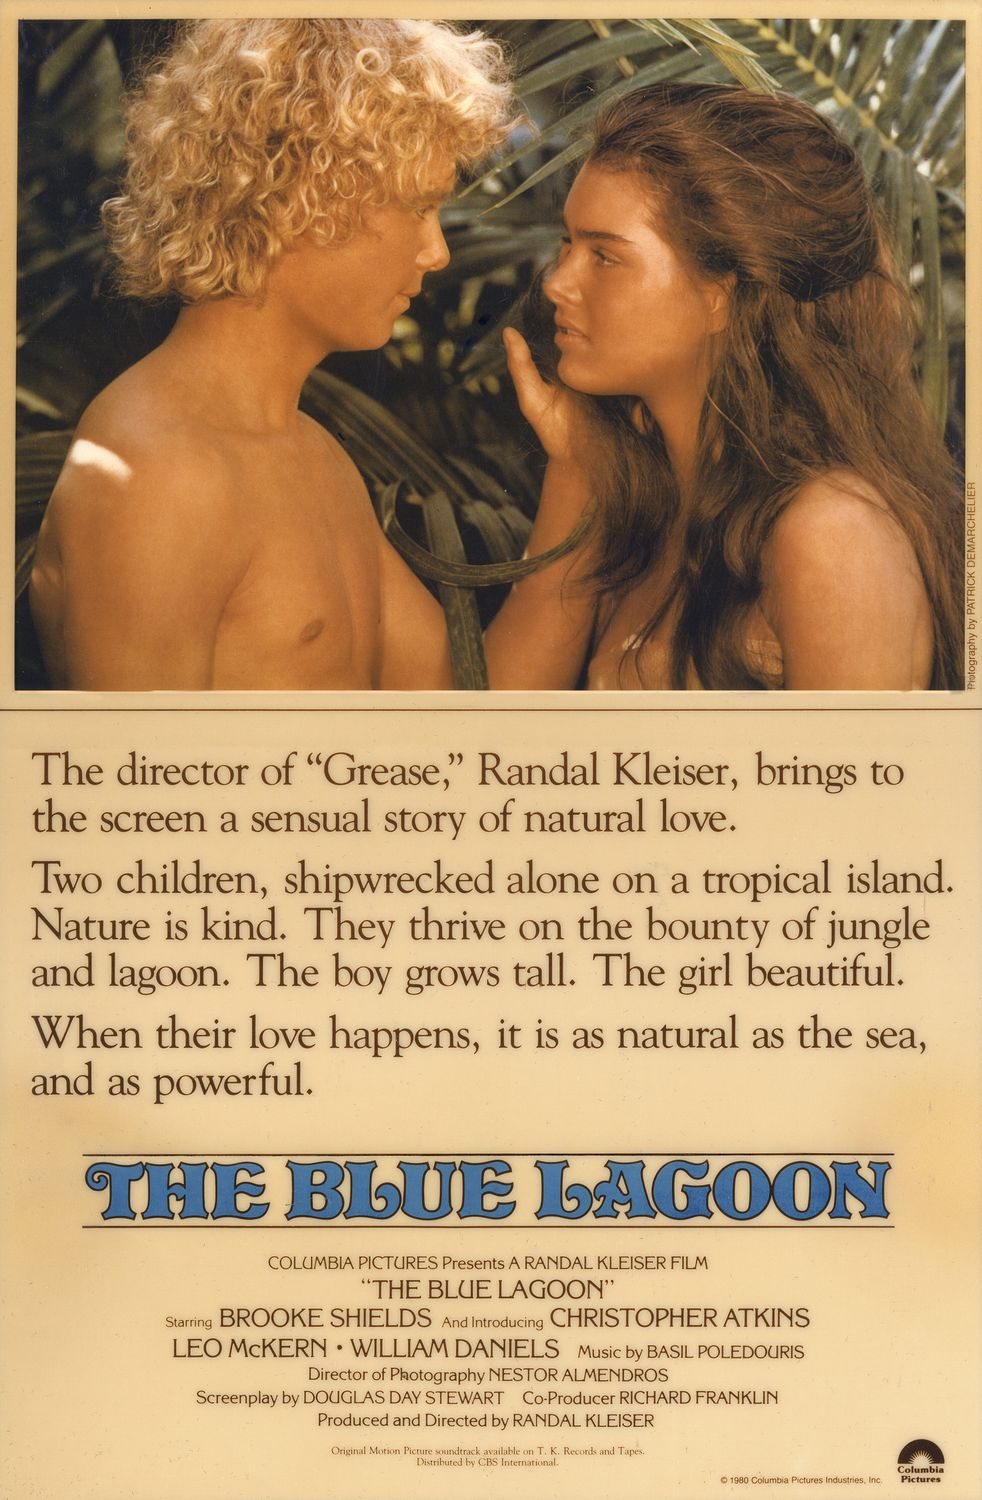 http://static.cinemagia.ro/img/db/movie/01/43/91/the-blue-lagoon-194616l.jpg